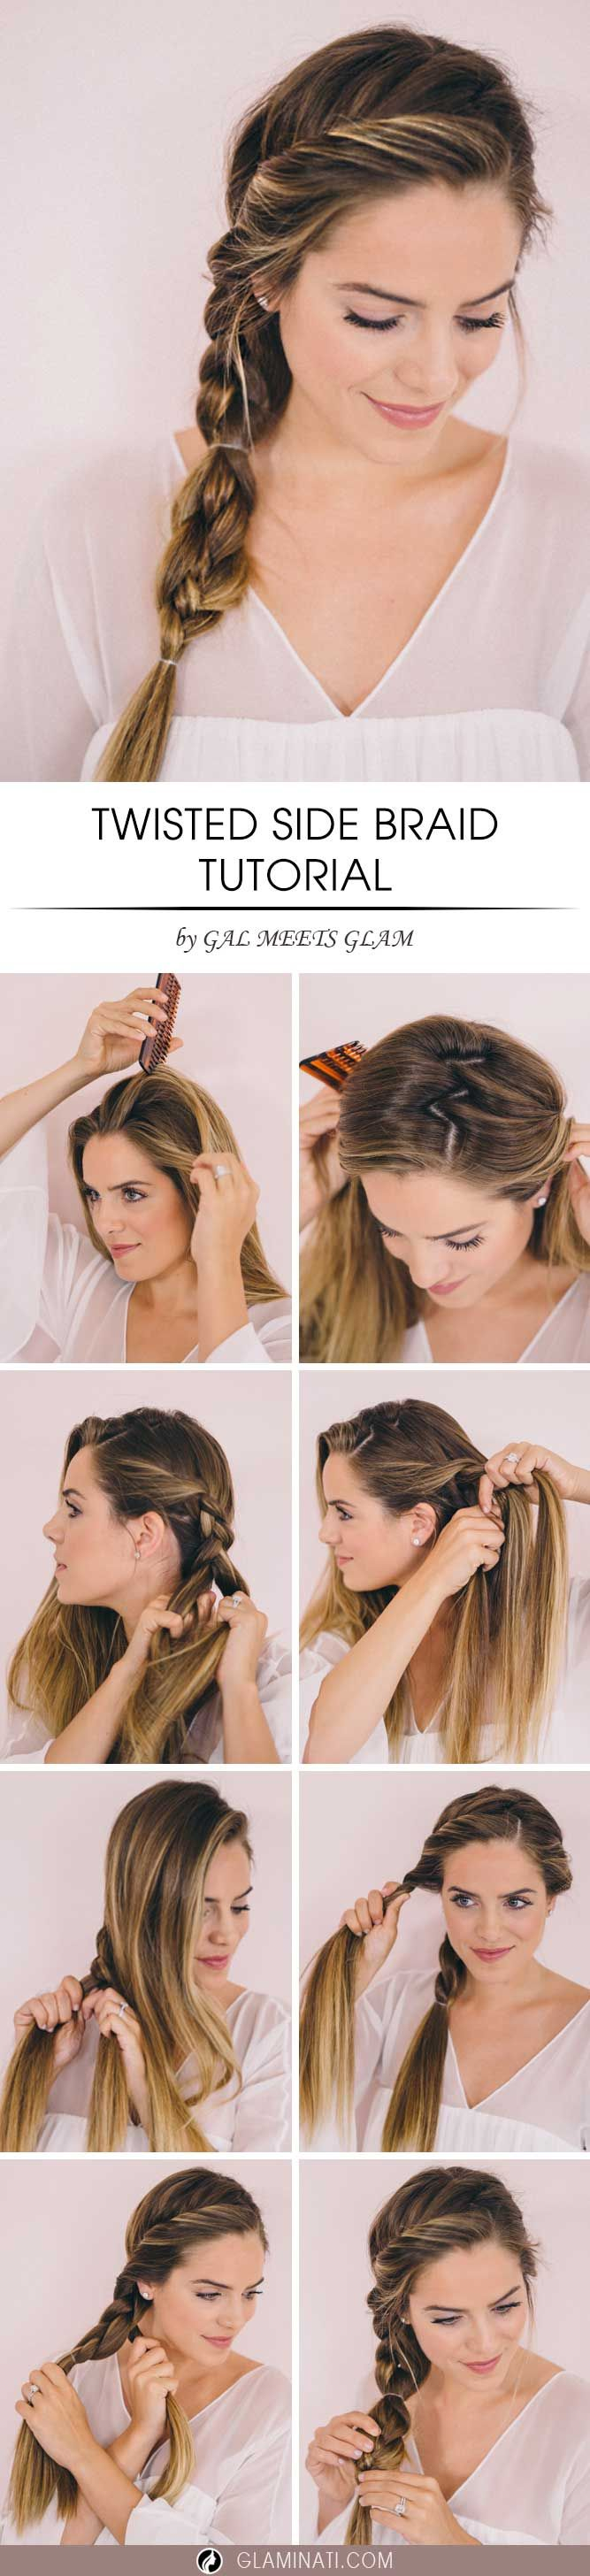 twisted side braid for various occasions | braids | long